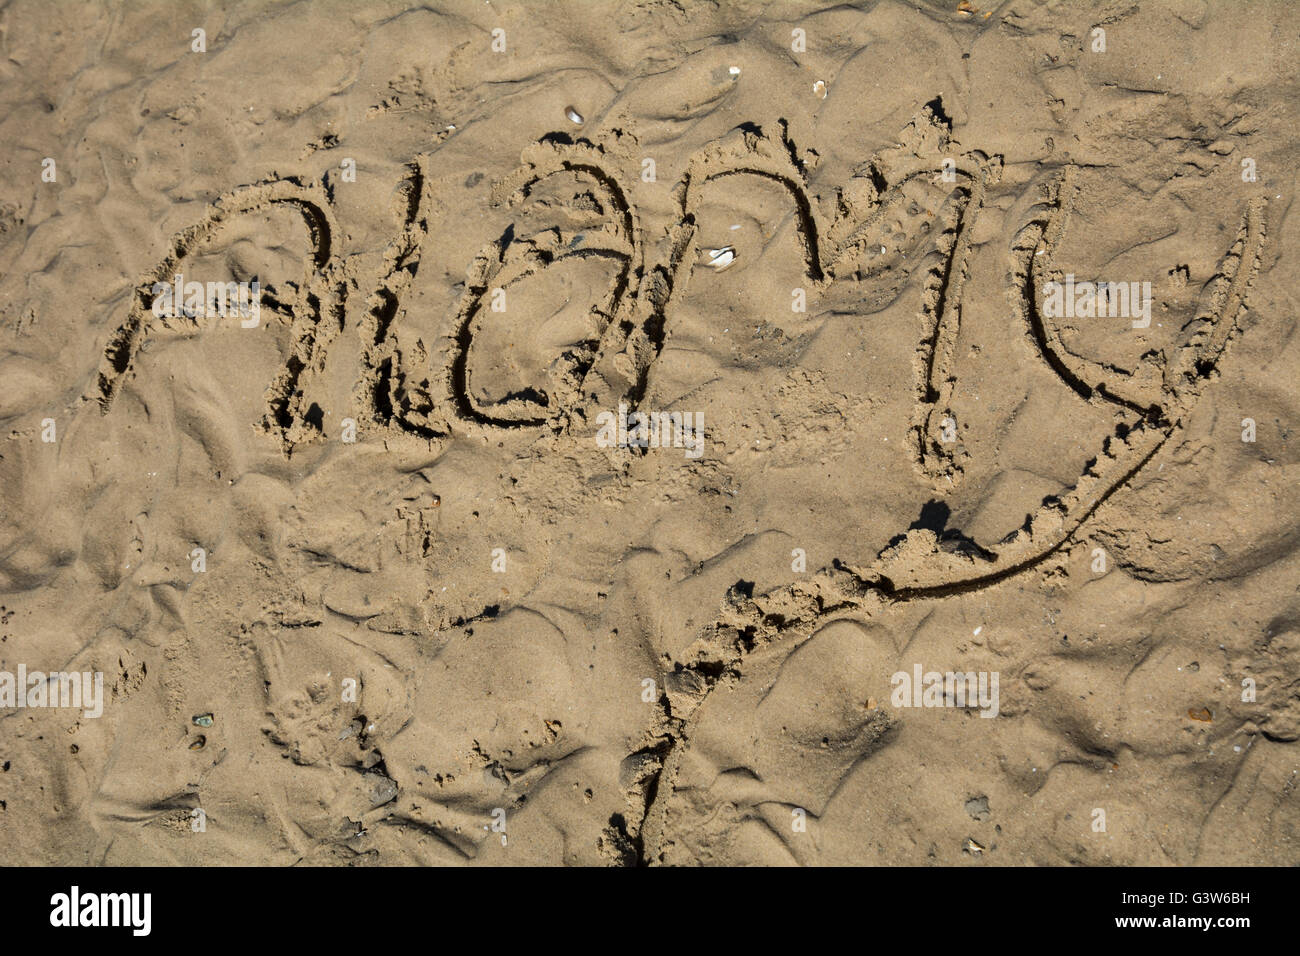 The word 'Alamy' drawn in the sand. - Stock Image